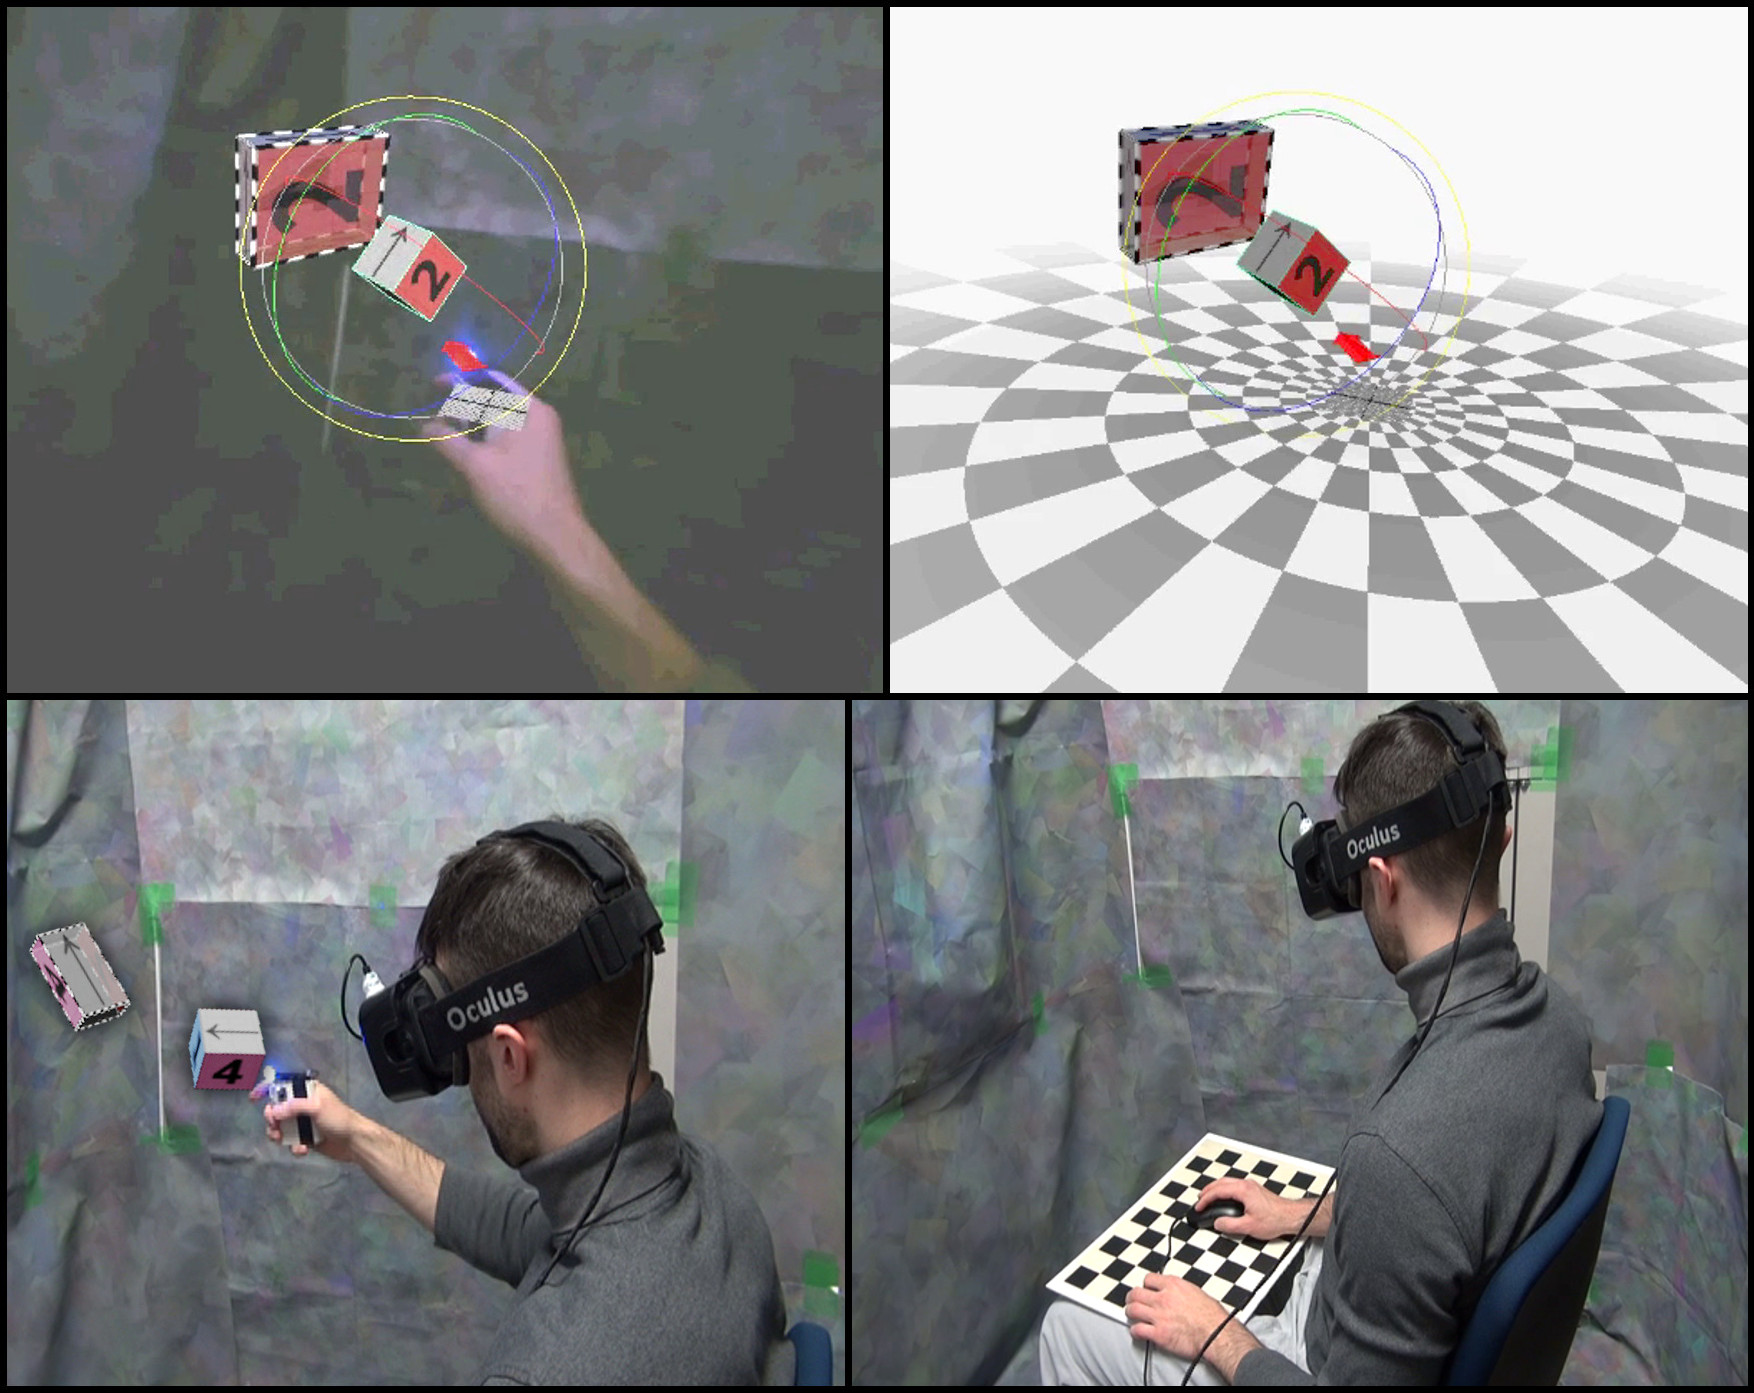 Augmented Reality versus Virtual Reality for 3D Object Manipulation